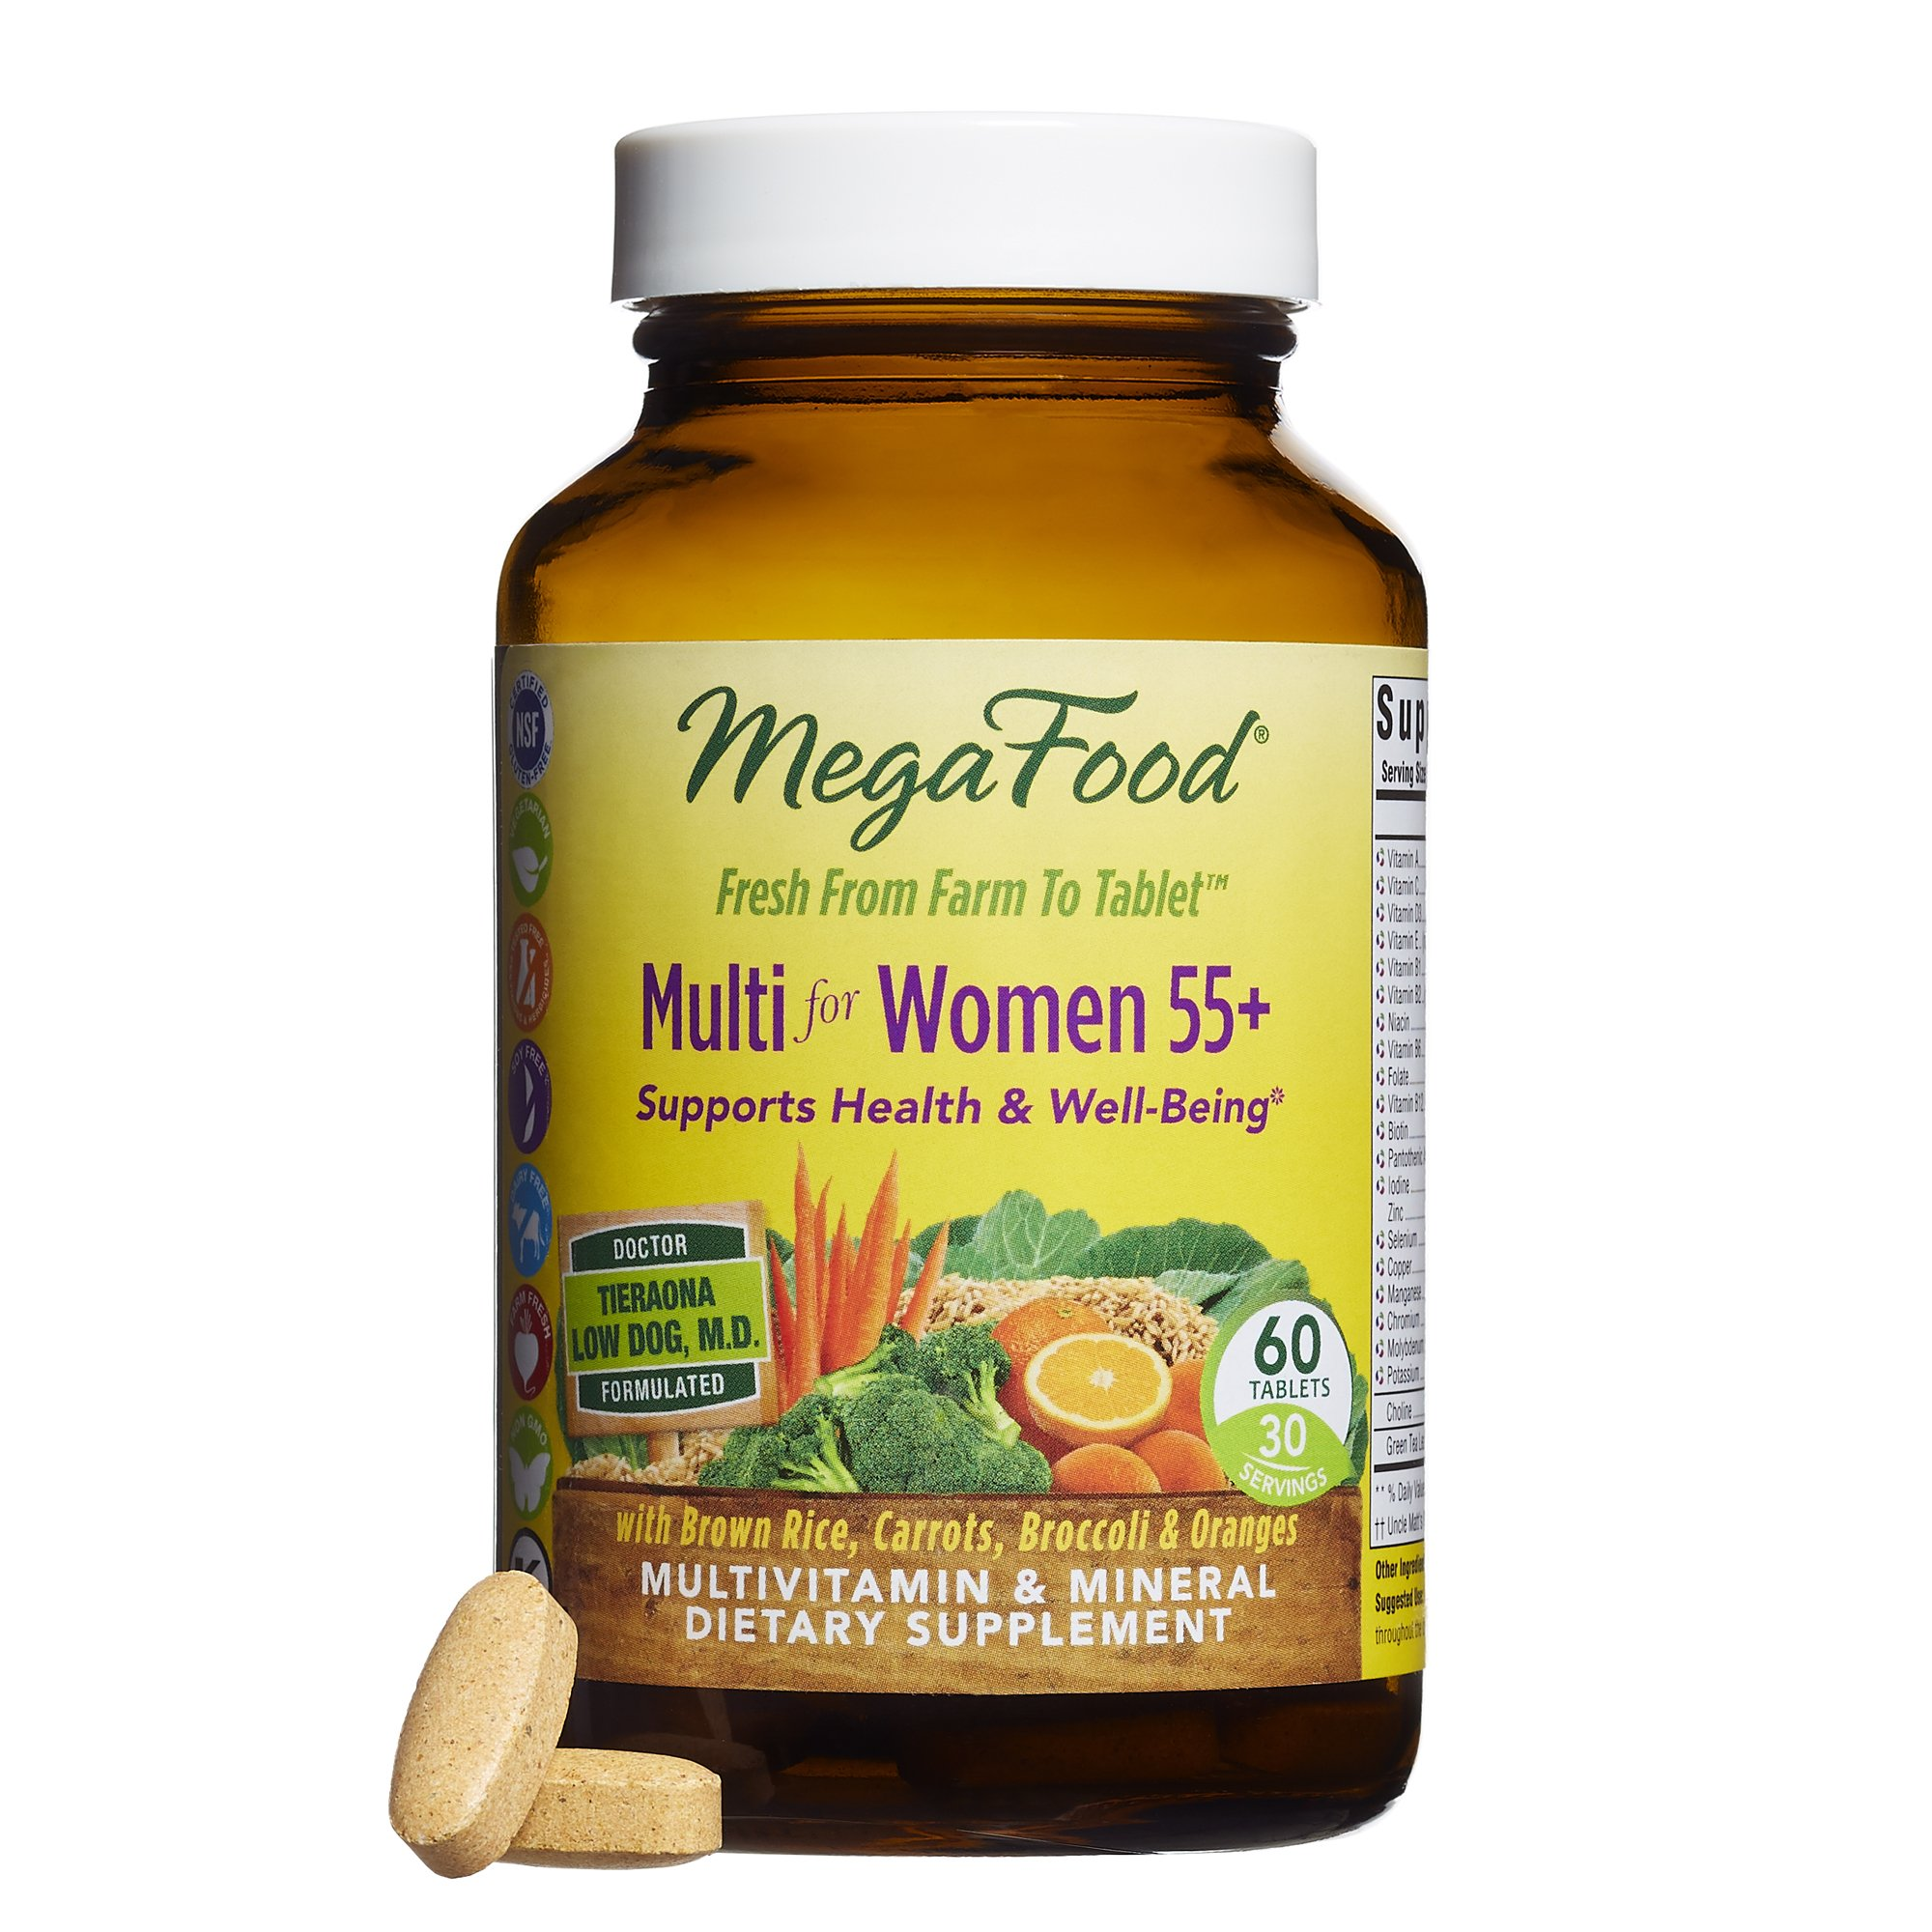 MegaFood - Multi for Women 55+, A Balanced Real Food Multivitamin, 60 Tablets (FFP)